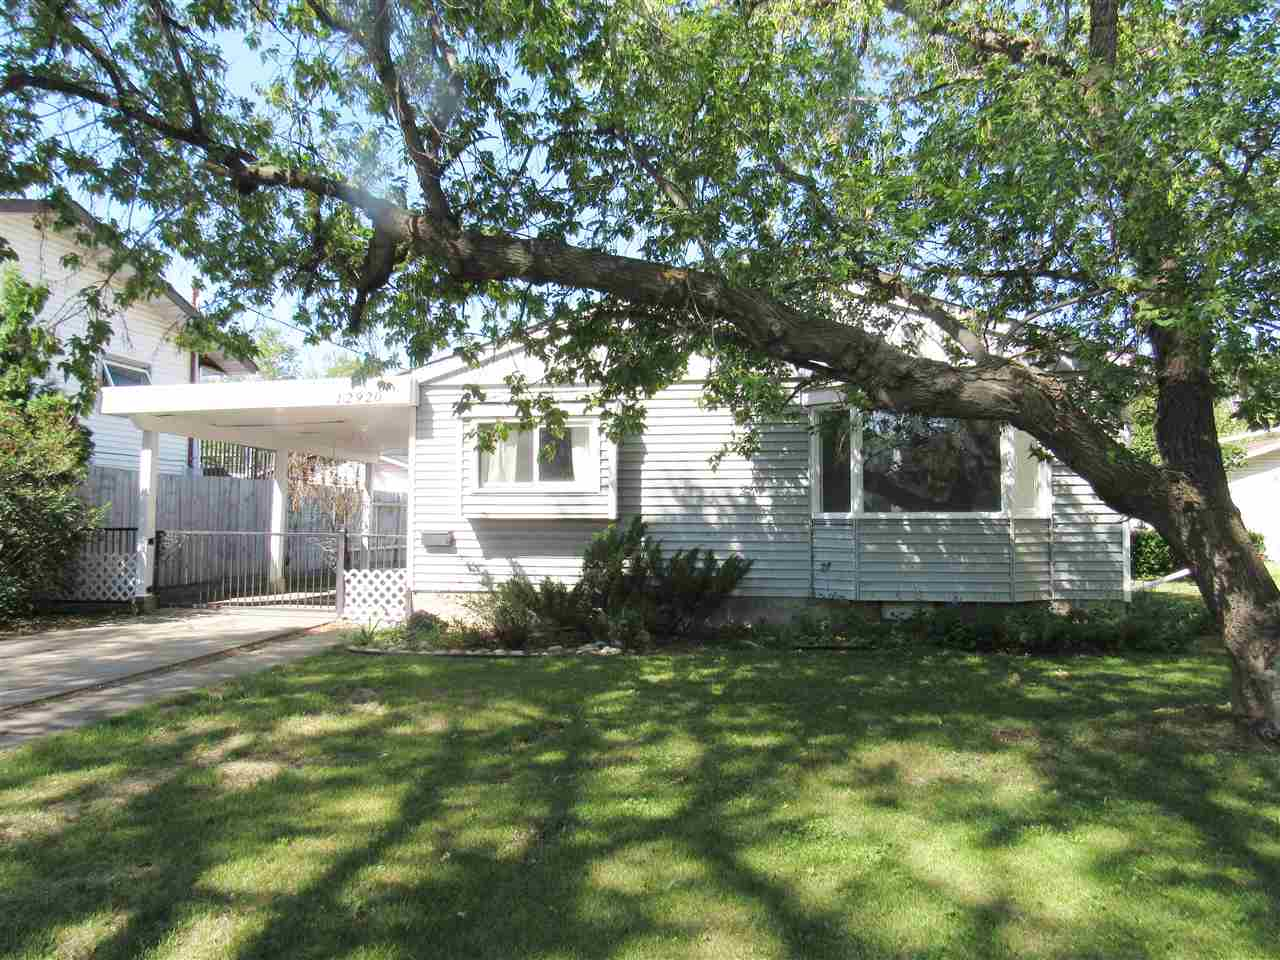 12920 115 Street, 3 bed, 1 bath, at $272,500